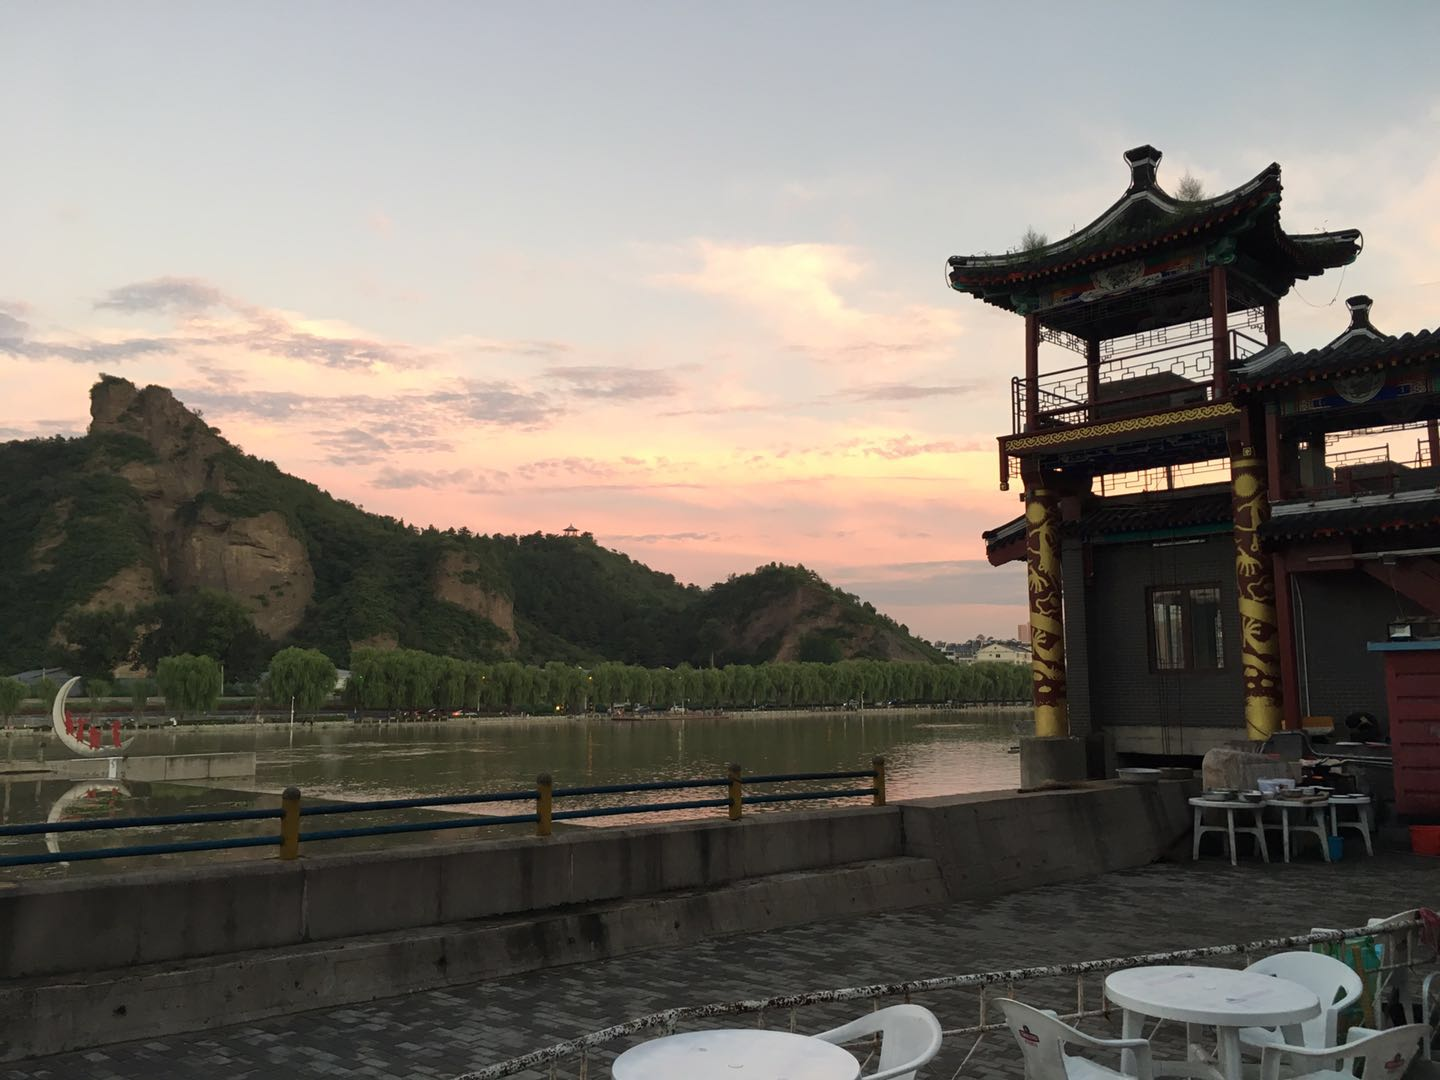 Sunset in Chengde, pagodas and mountains